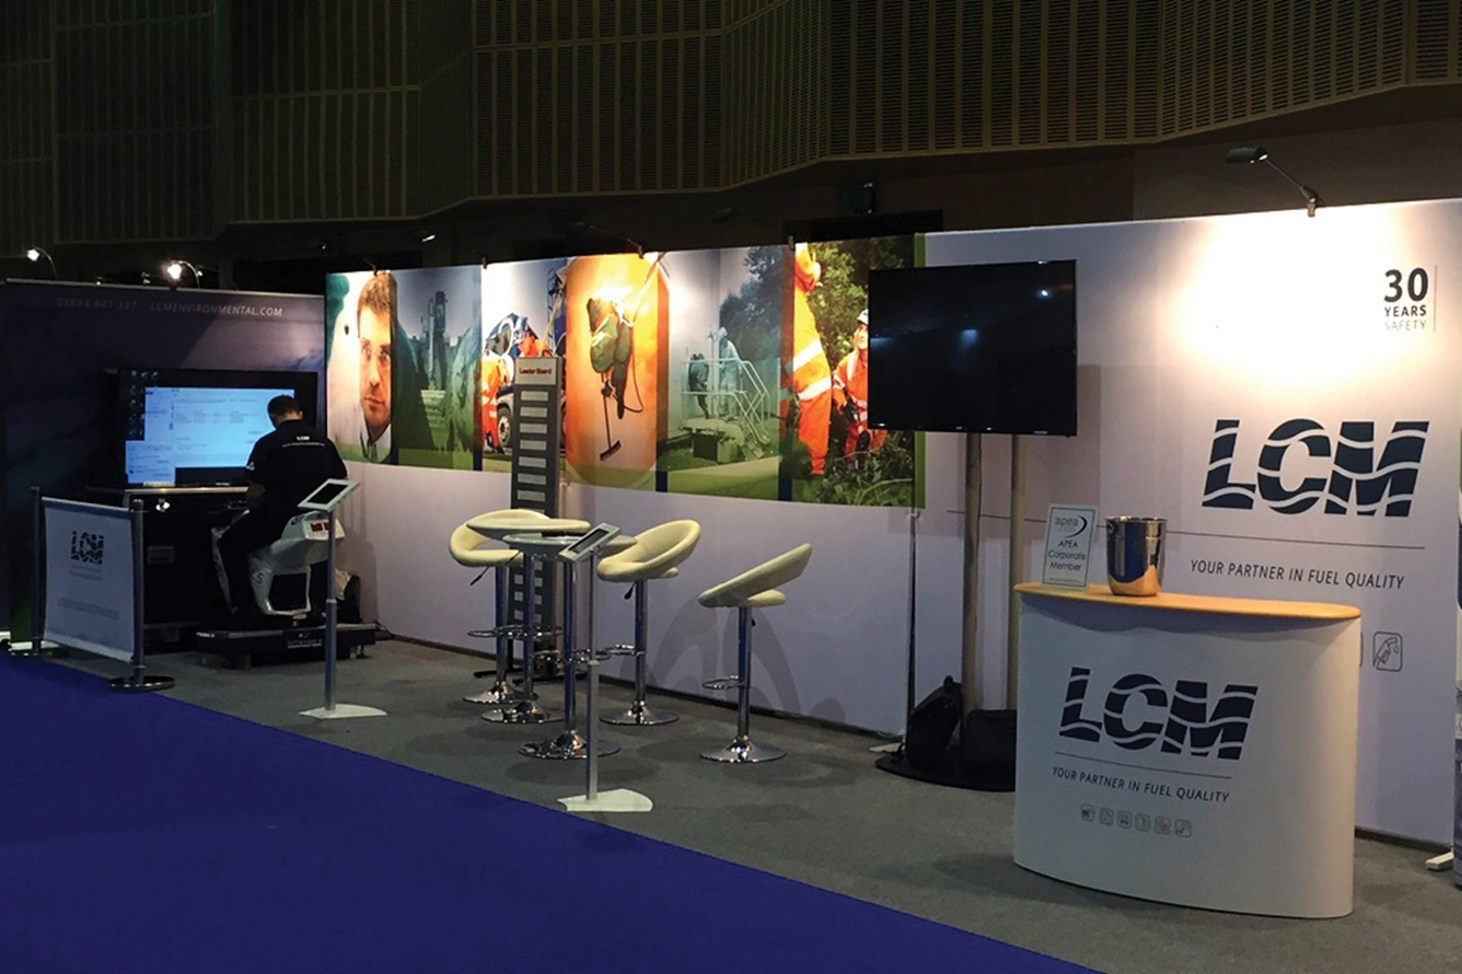 LCM, Environmental, industrial, graphic design, Design79, Cornwall, Exeter, large scale, artwork, exhibition, stands, display